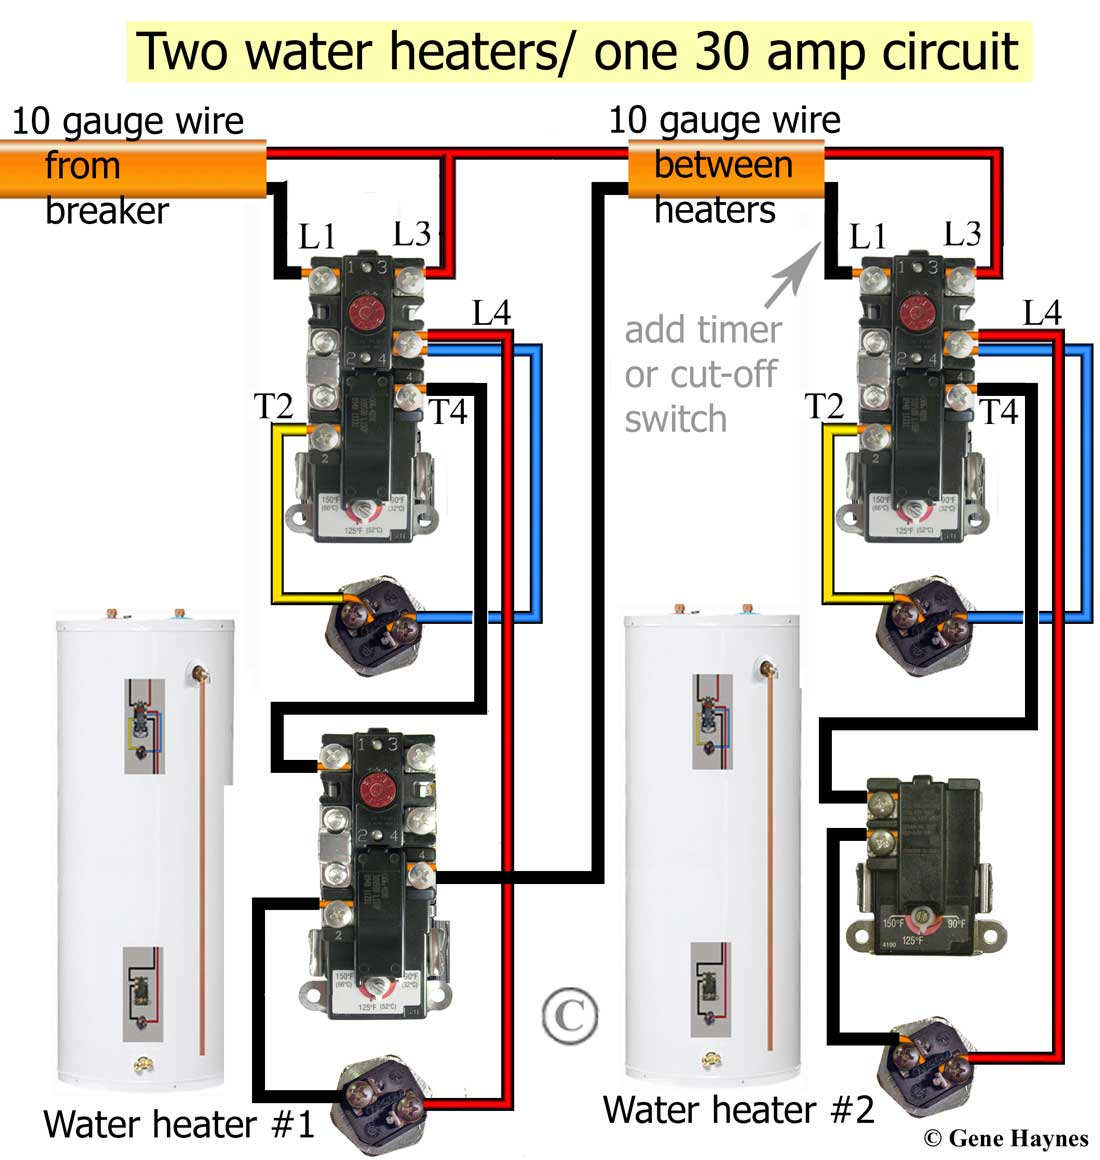 electric water heater thermostat wiring diagram Collection-Rheem Electric Water Heater Wiring Diagram New How to Wire Water Heater thermostats 2-f